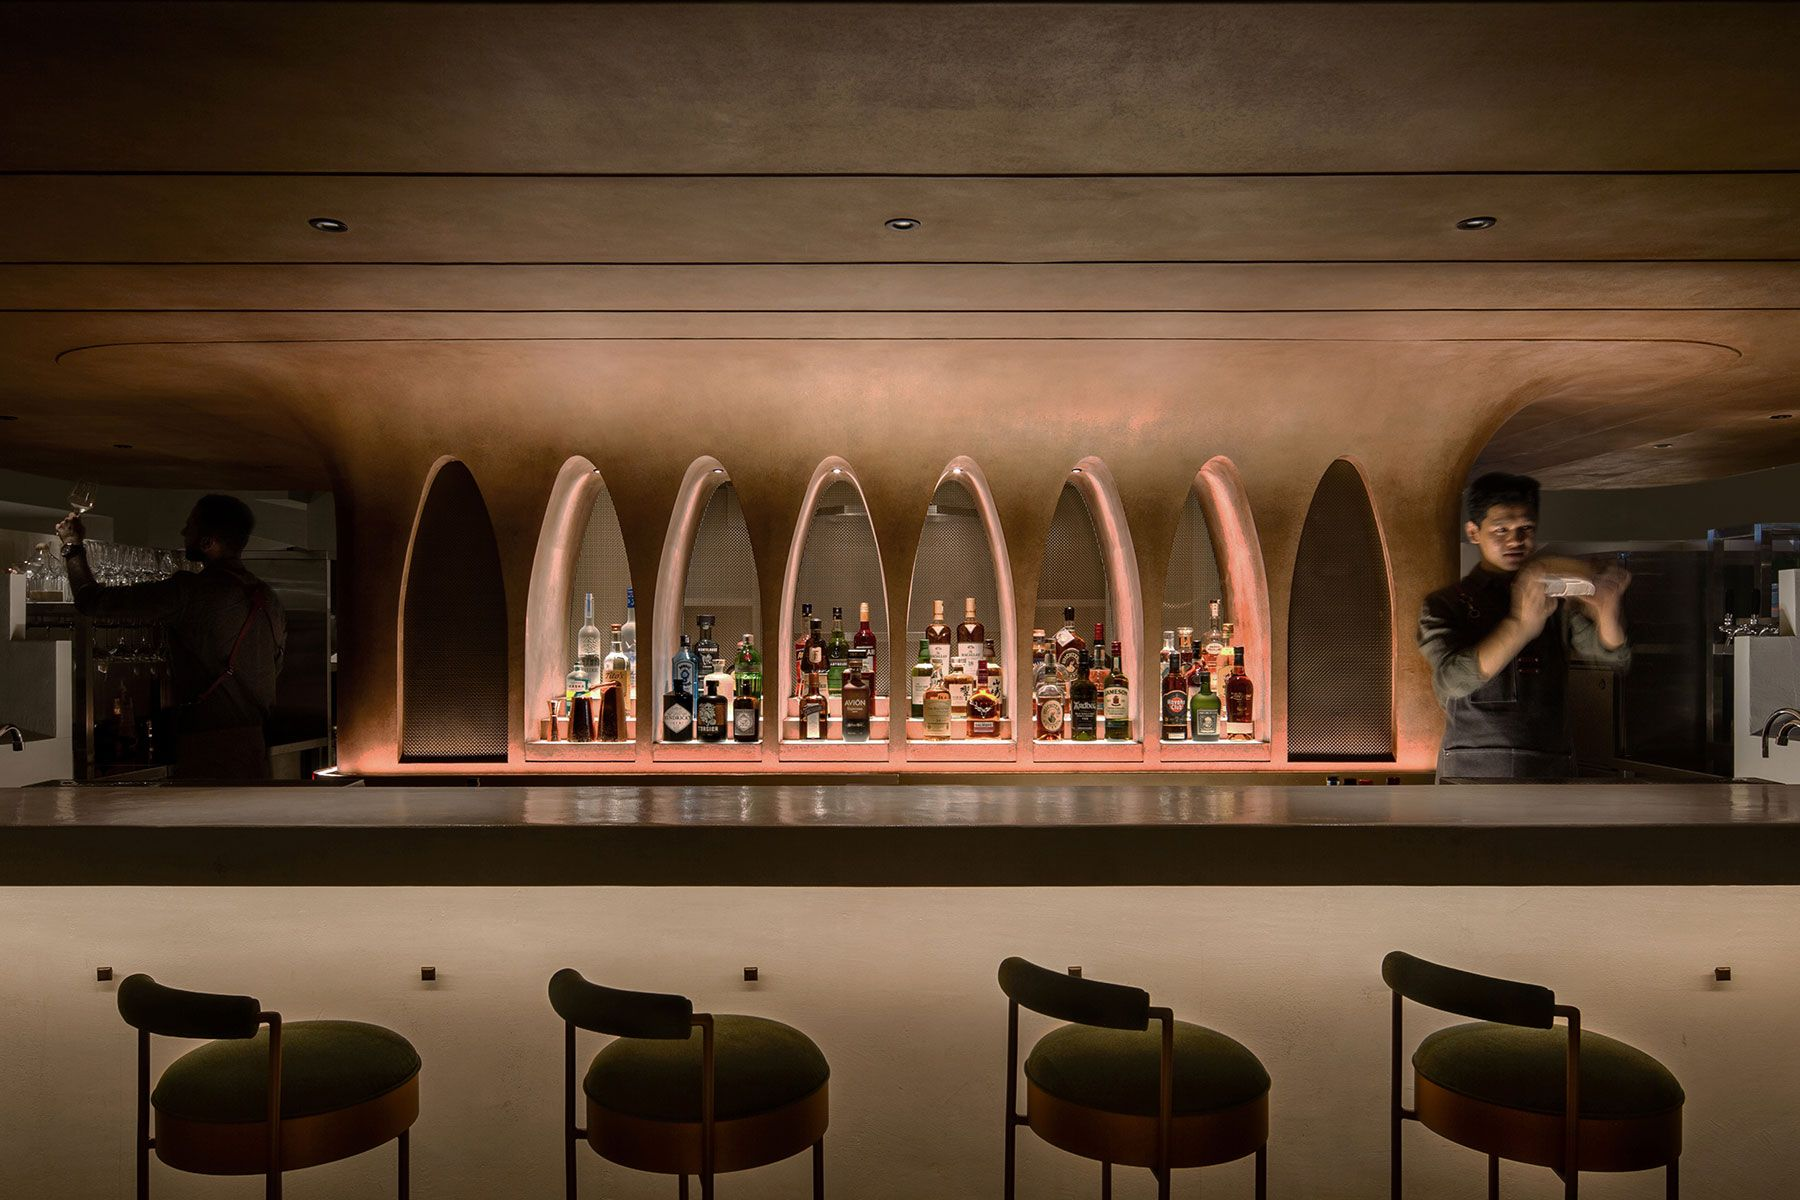 Zzura, A Newly-Opened Saharan Speakeasy, Is An Oasis In The City